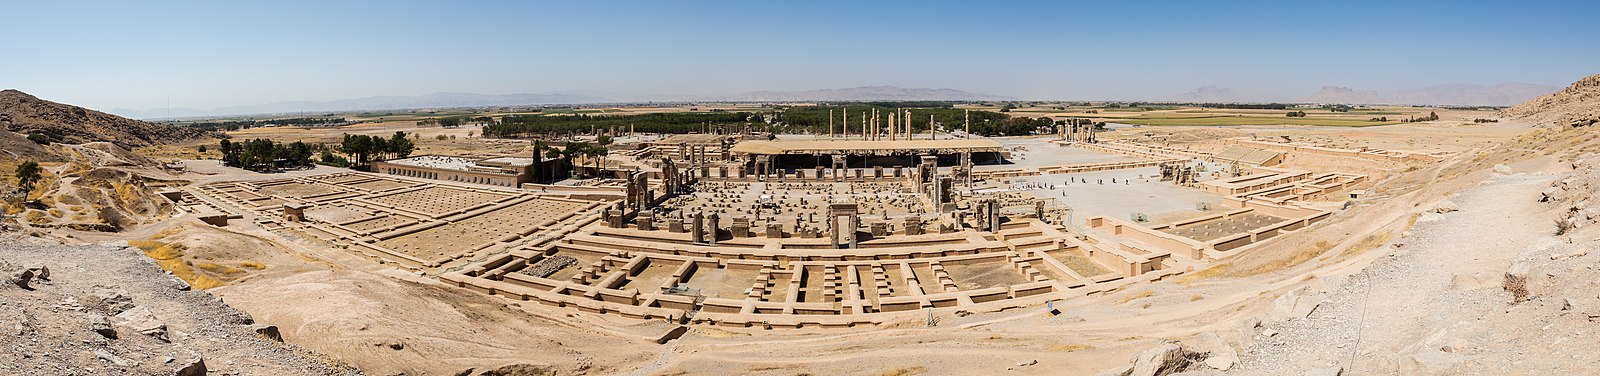 A panoramic view of Persepolis. Persépolis, Irán, 2016-09-24, DD 64-68 PAN.jpg